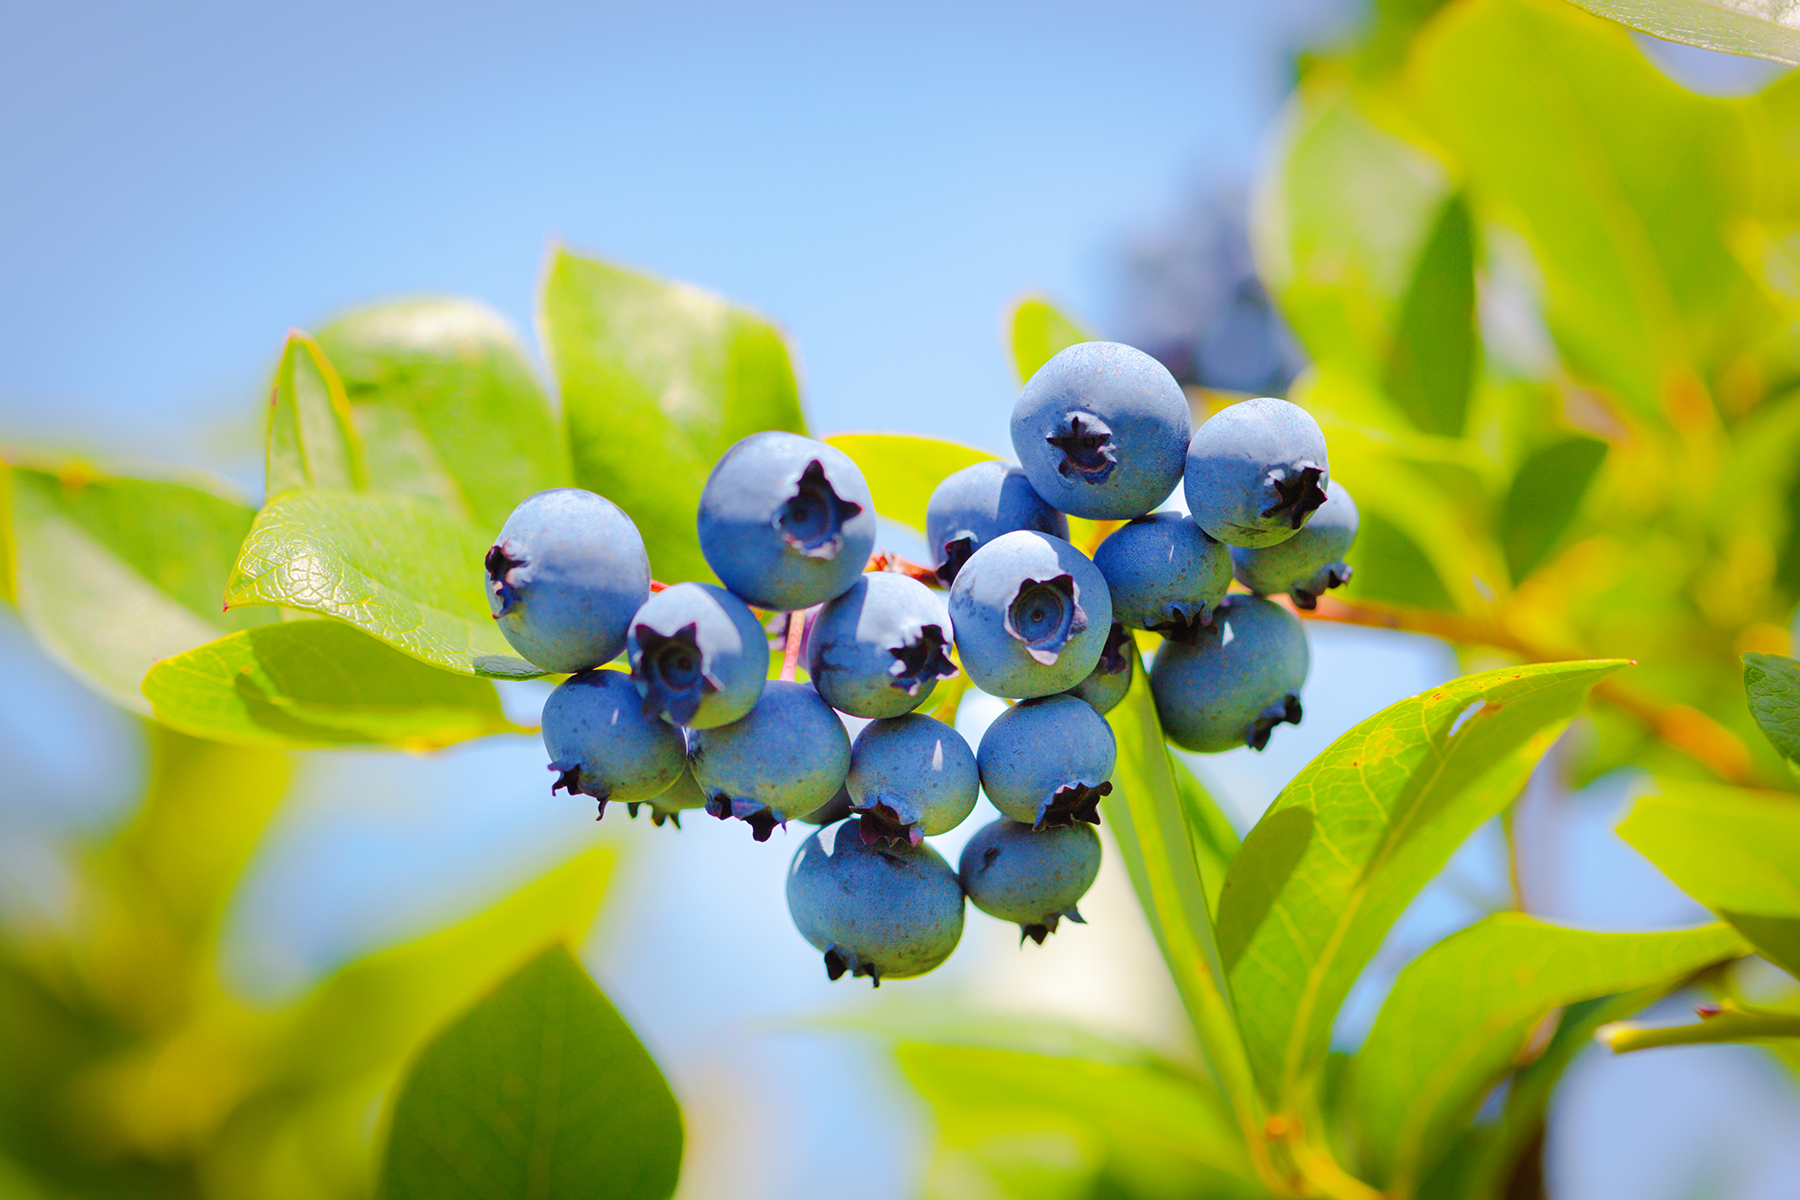 SANLUCAR MAKES ITS FIRST SHIPMENT OF BLUEBERRIES FROM SPAIN TO MIDDLE EAST WITH LATEST CONTROLLED ATMOSPHERE TECHNOLOGY